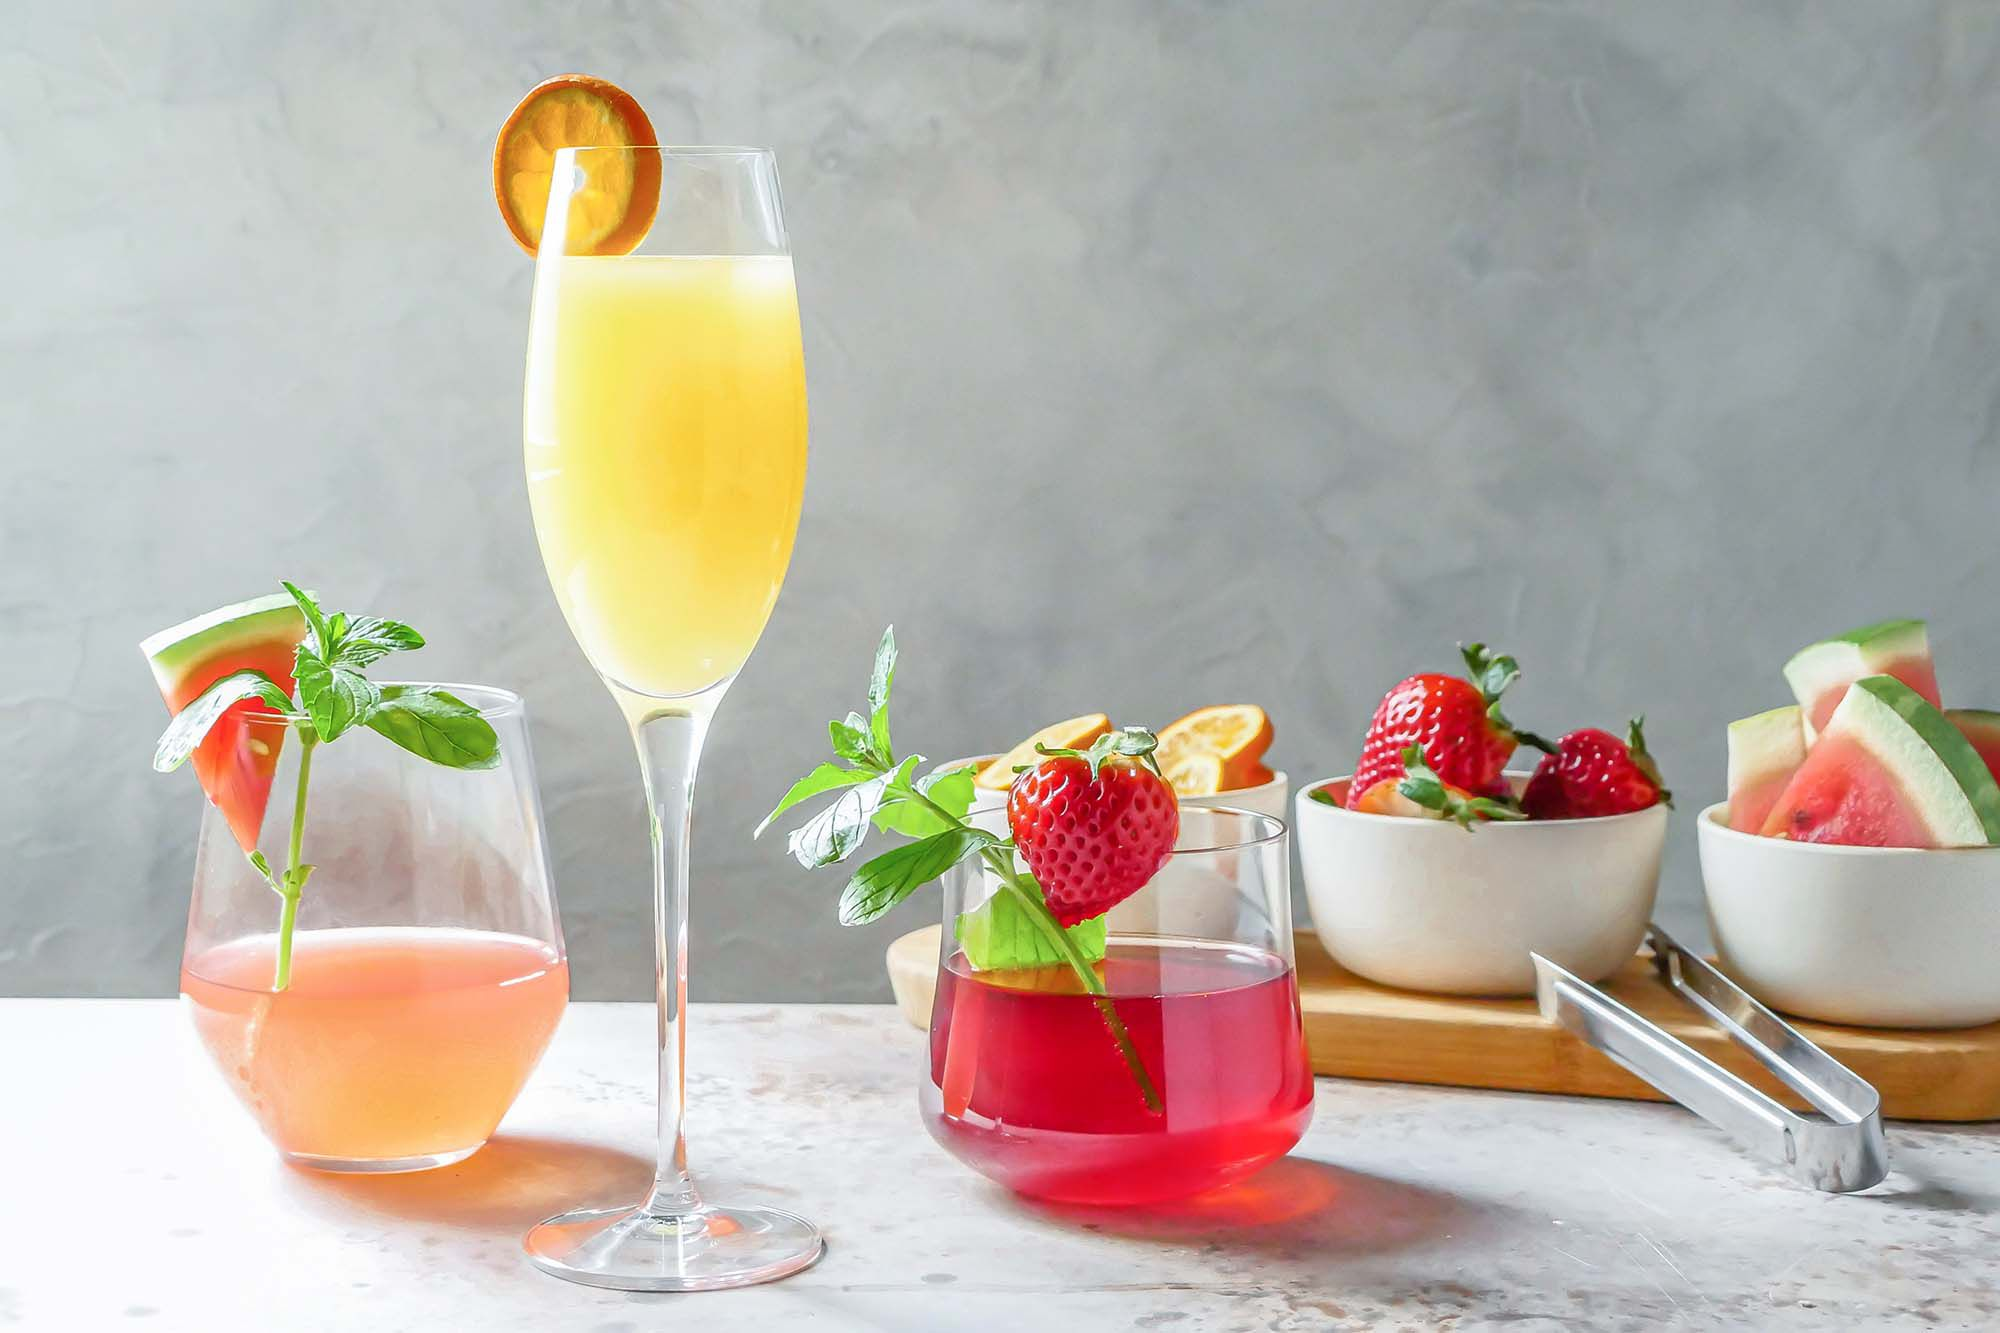 A variety of mimosas on a table and garnished with fruit for a DIY Mimosa Bar.